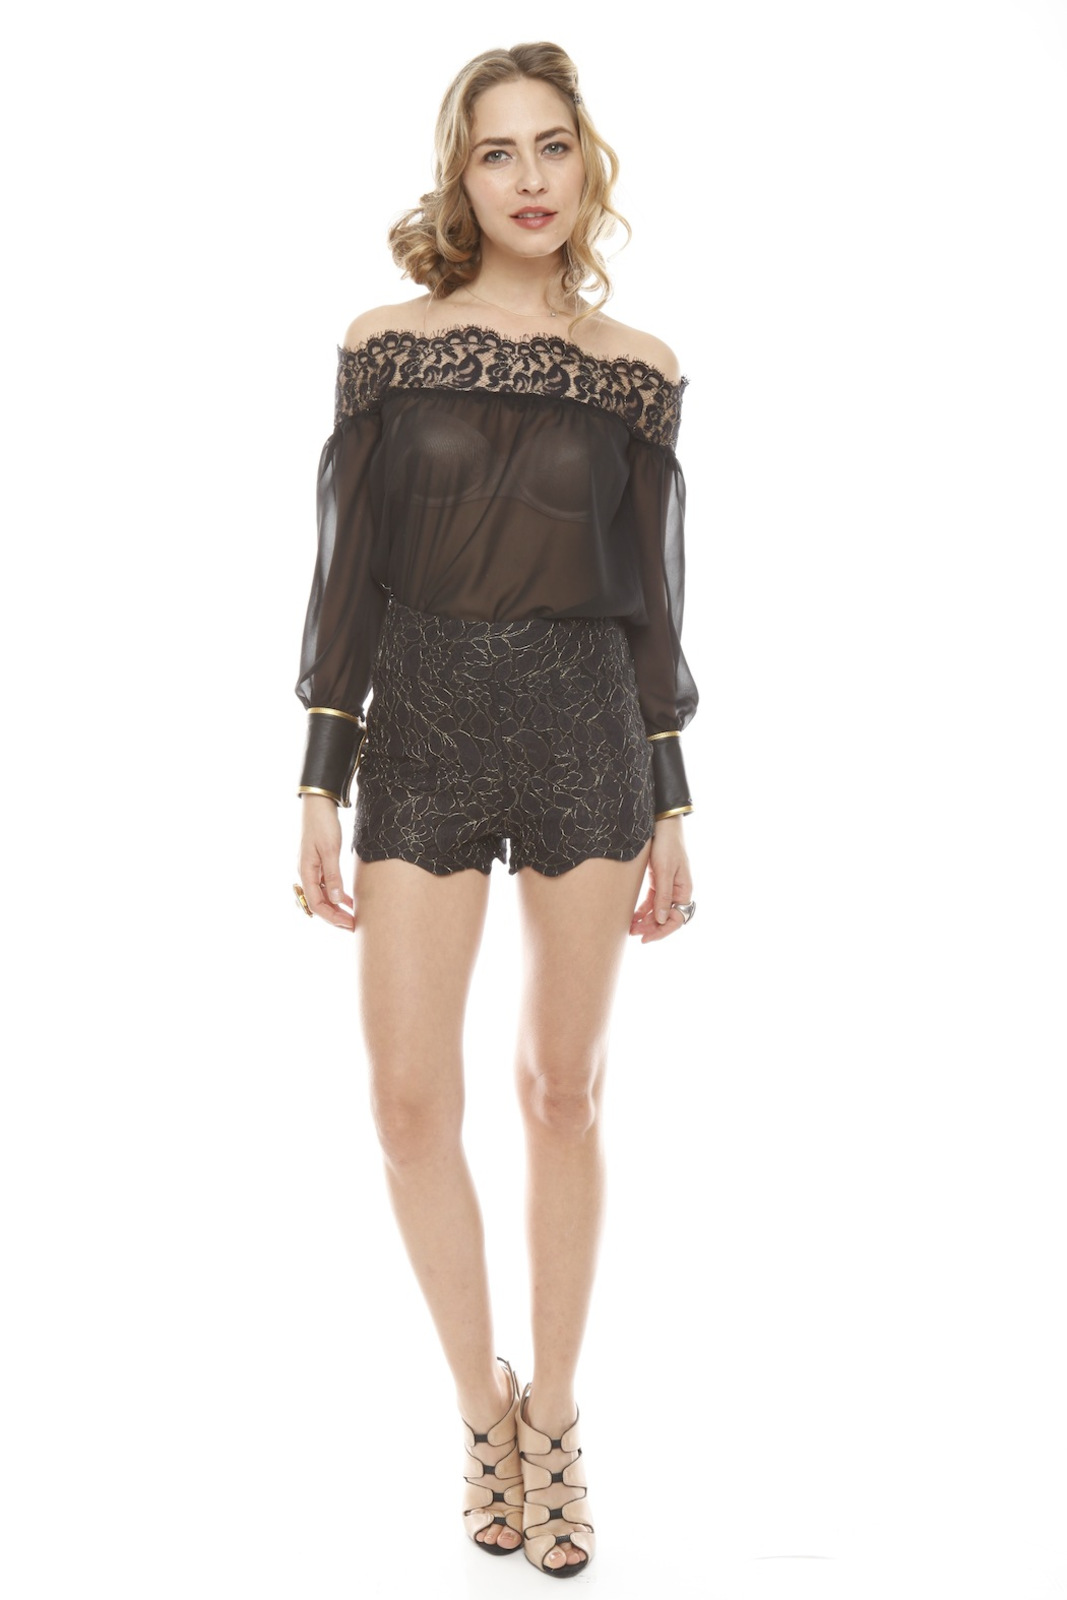 Patricia Del Castillo Lace High-Waist Shorts - Front Full Image